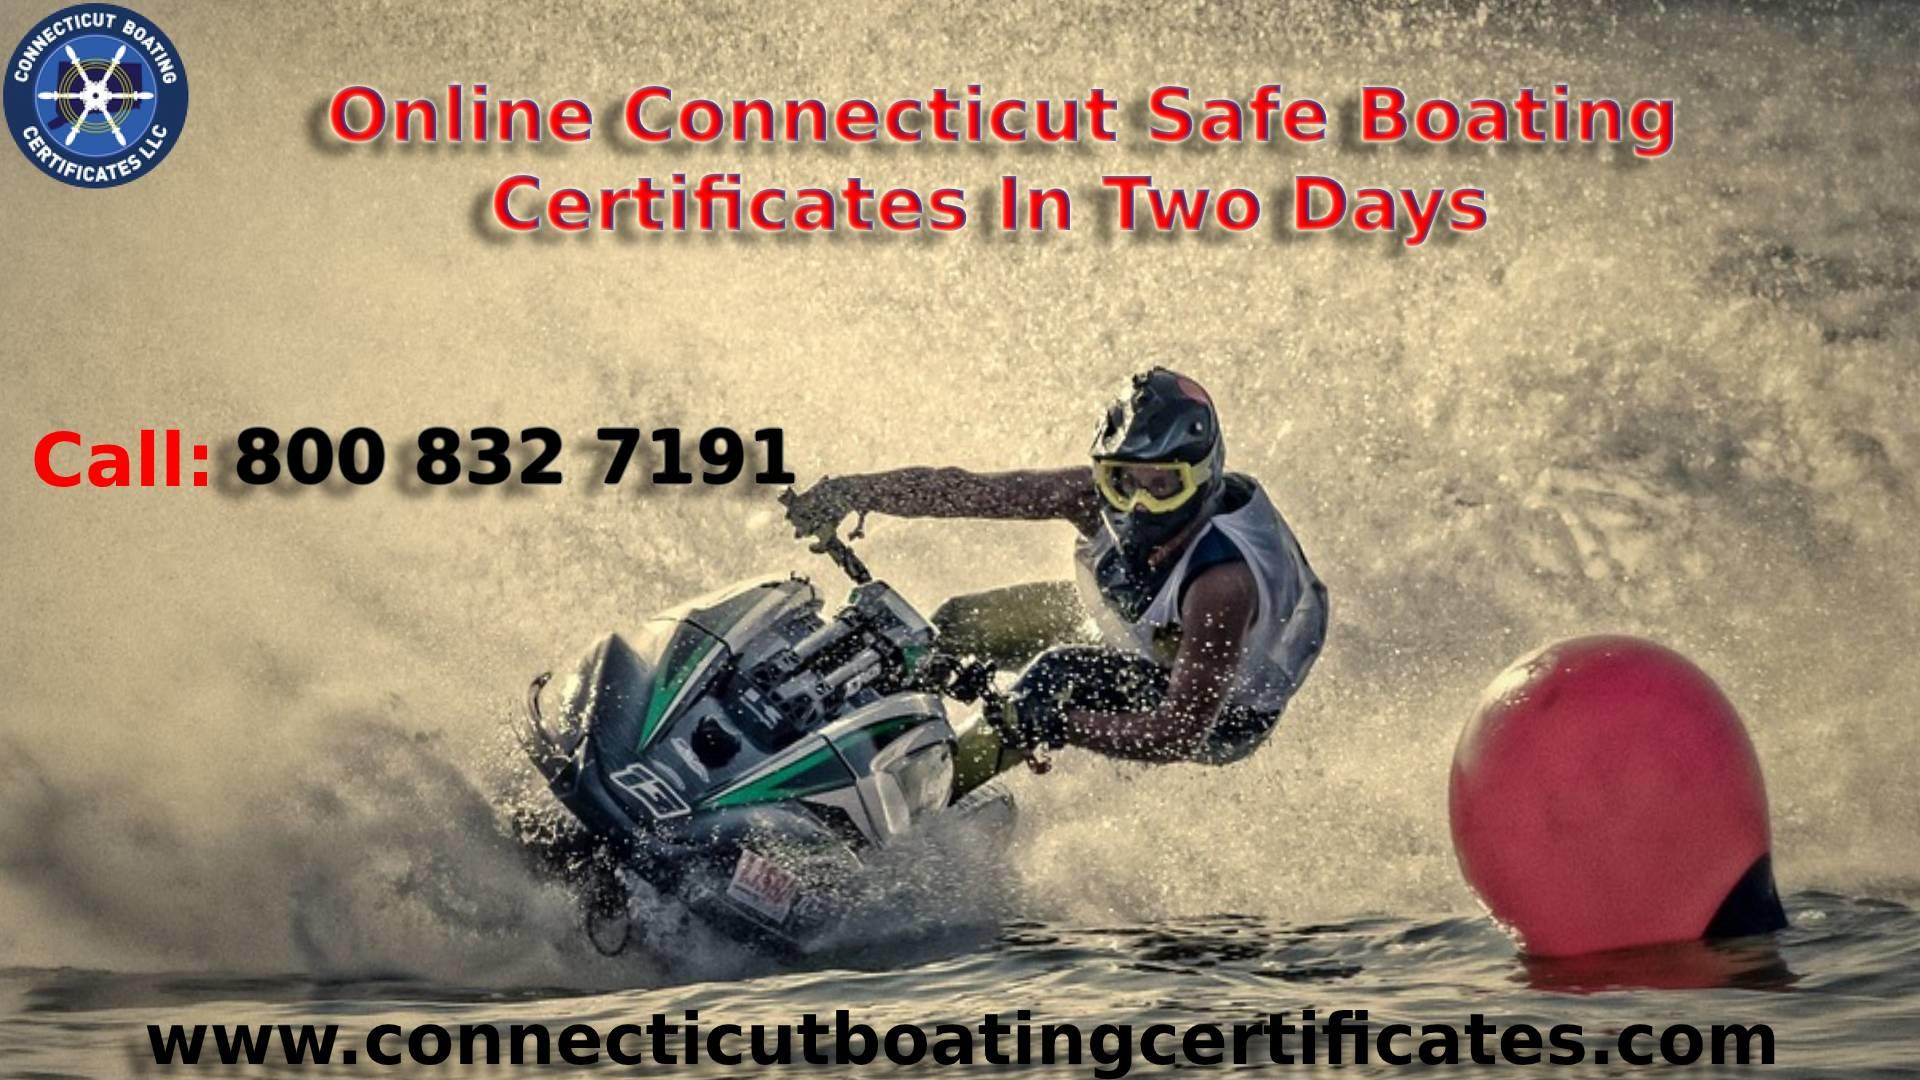 Image - https://www.connecticutboatingcertificates.com/event/two-night-online-course-wednesday-august-26th-thurs-augu...